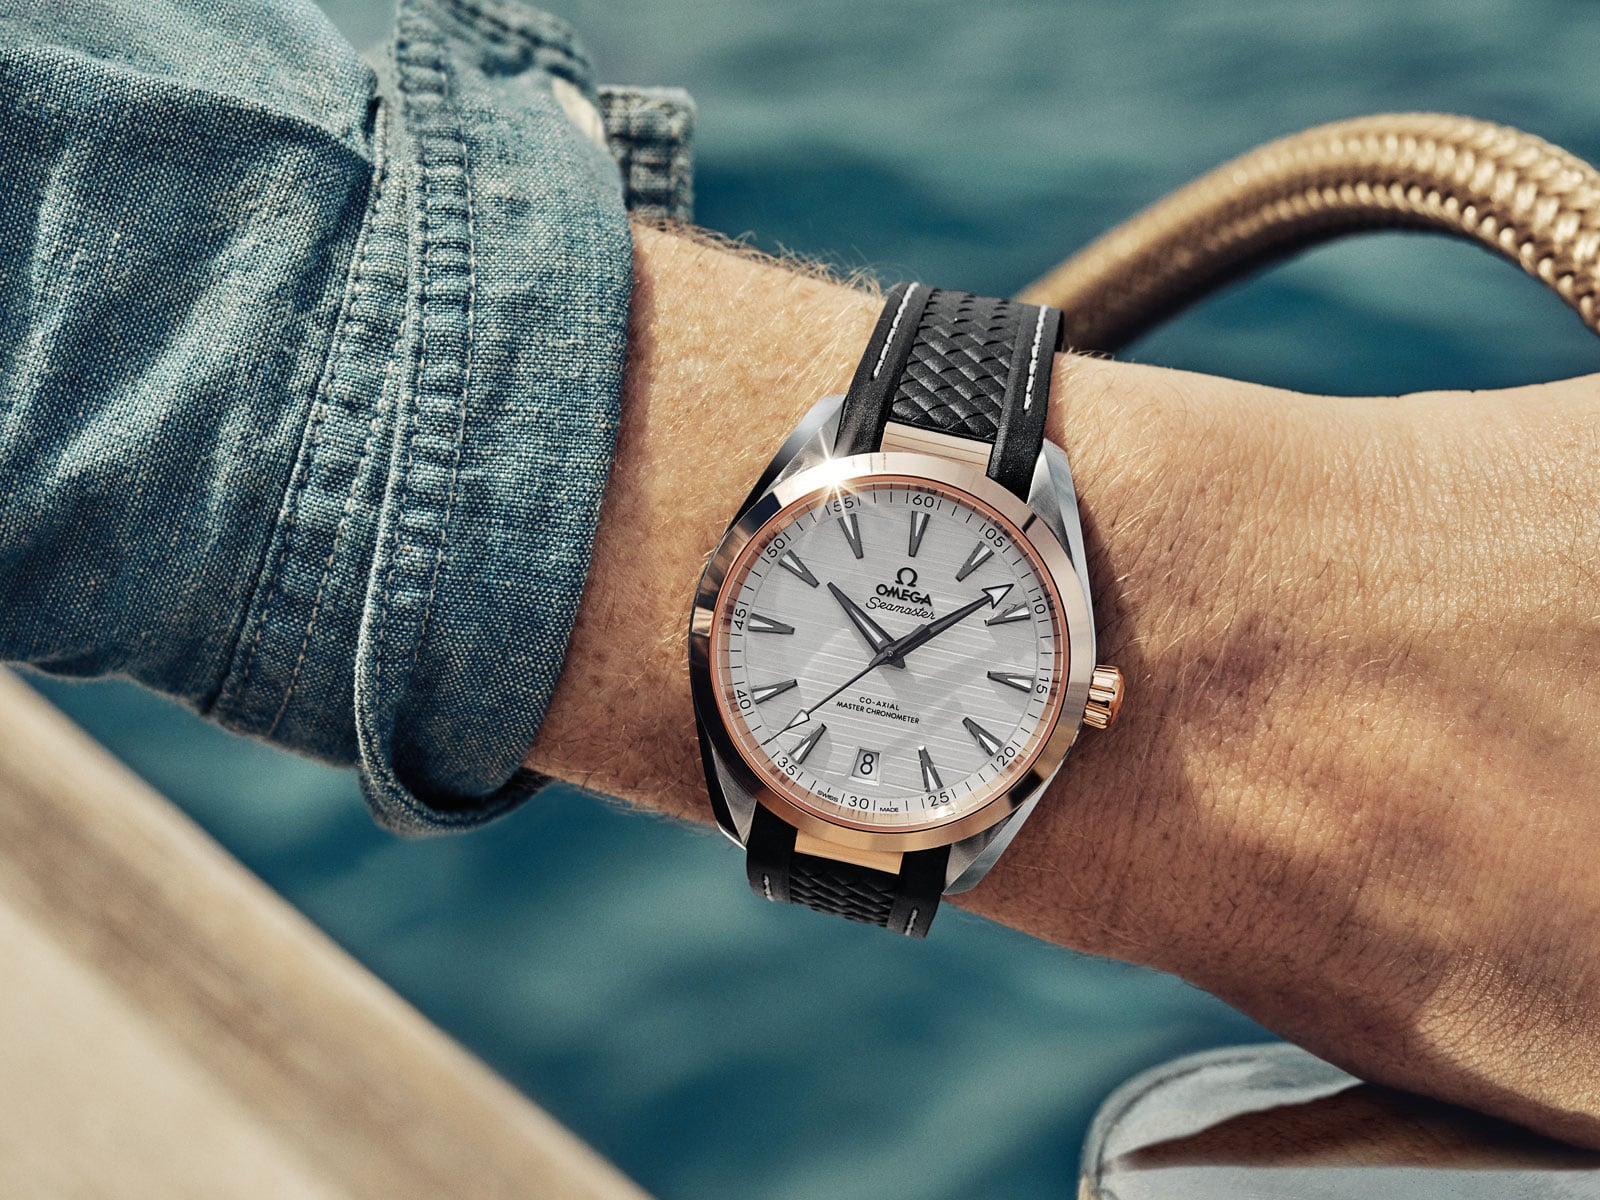 Seamaster Aqua Terra 150m Gents' Collection - Single - 33810